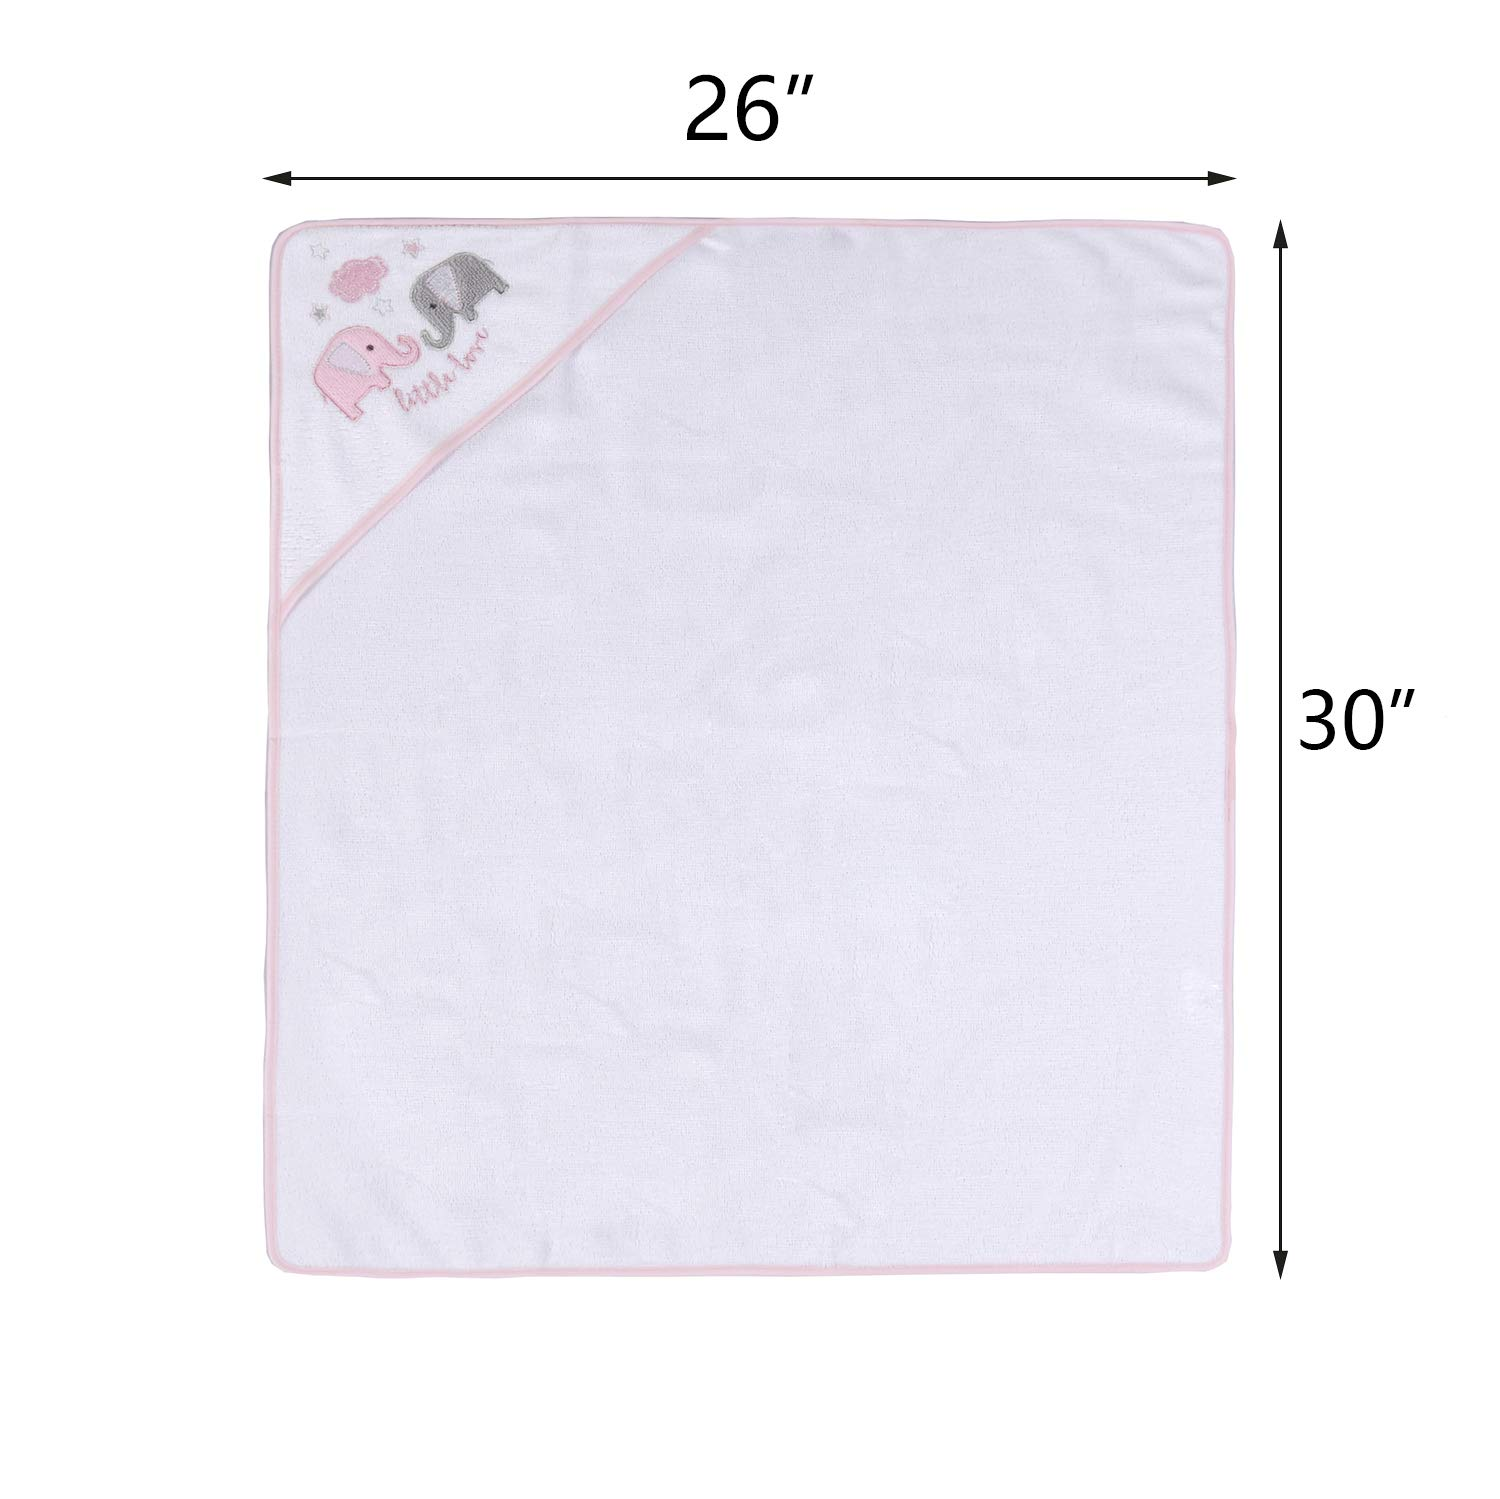 Great Gift for Infants and Newborn 3 Pack Viviland Baby Hooded Bath Towel Soft Touch and Strong Absorption